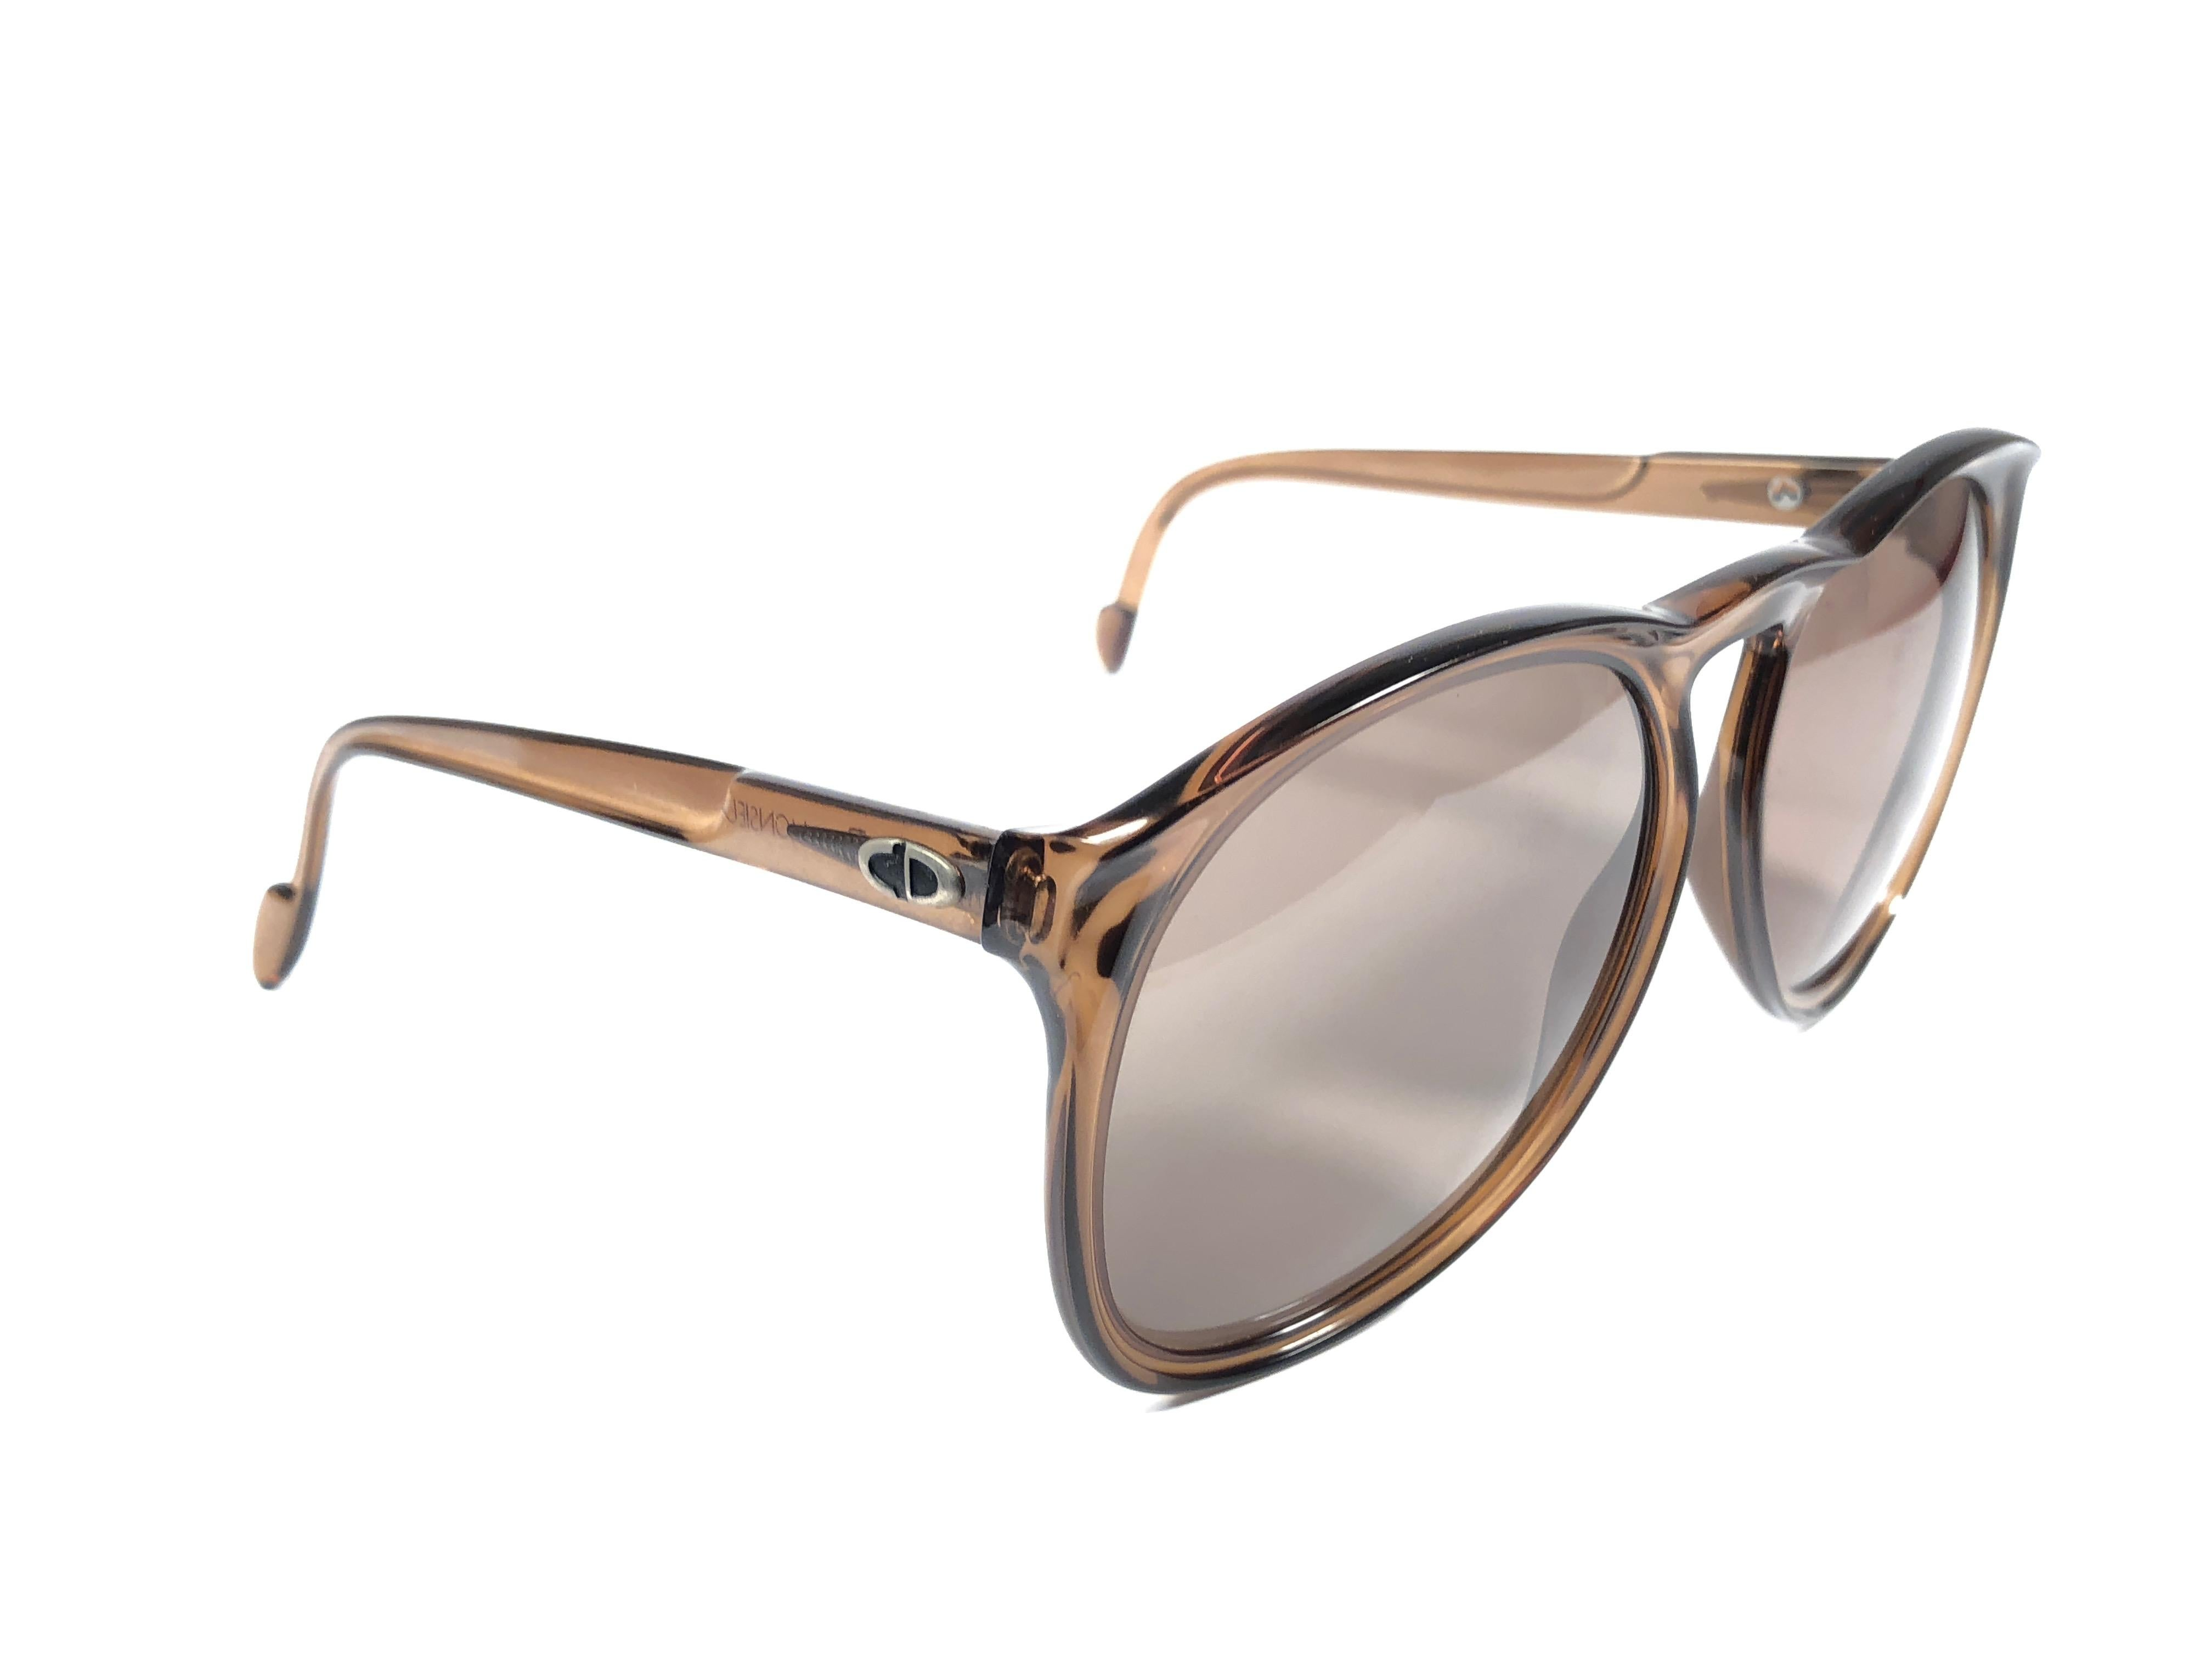 249f1a4656d New Vintage Christian Dior Monsieur D62 Oversized Green Optyl Austria  Sunglasses For Sale at 1stdibs